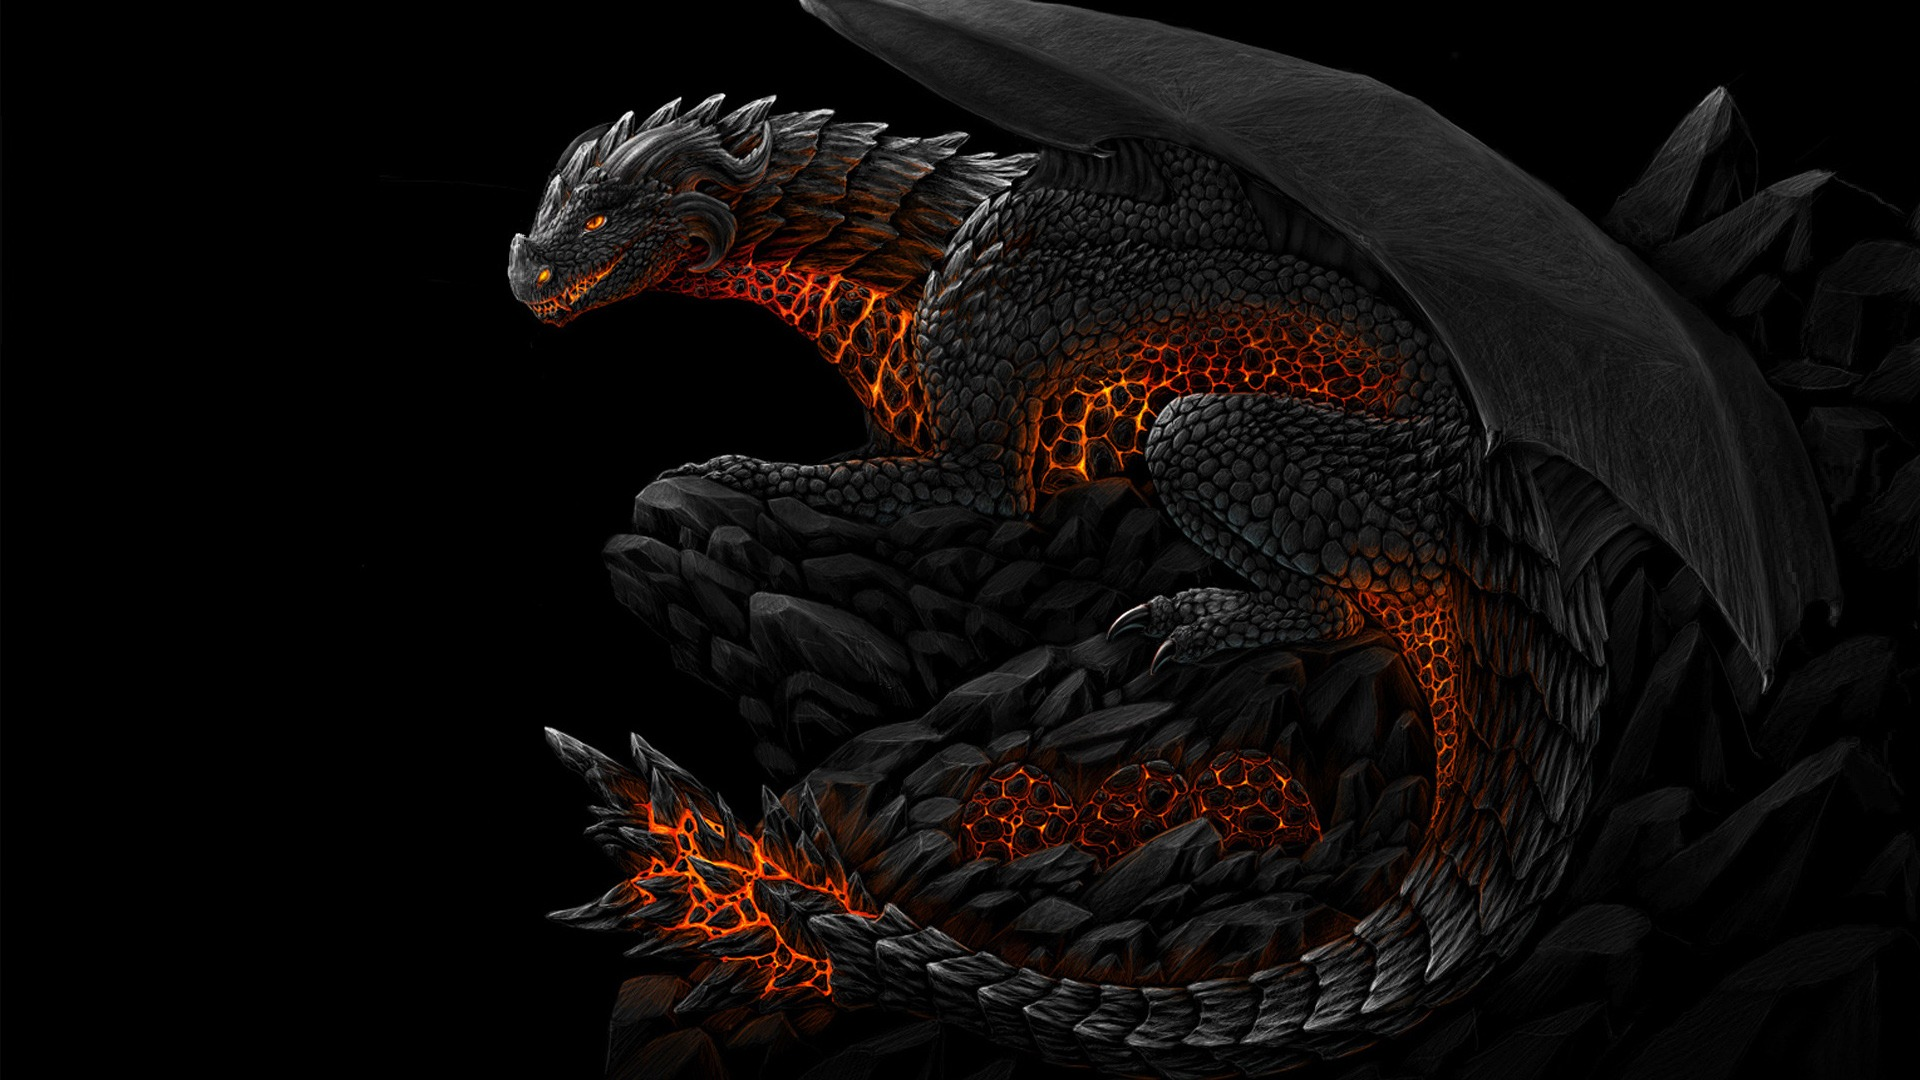 Dragon Background Wallpaper WIN10 THEMES 1920x1080